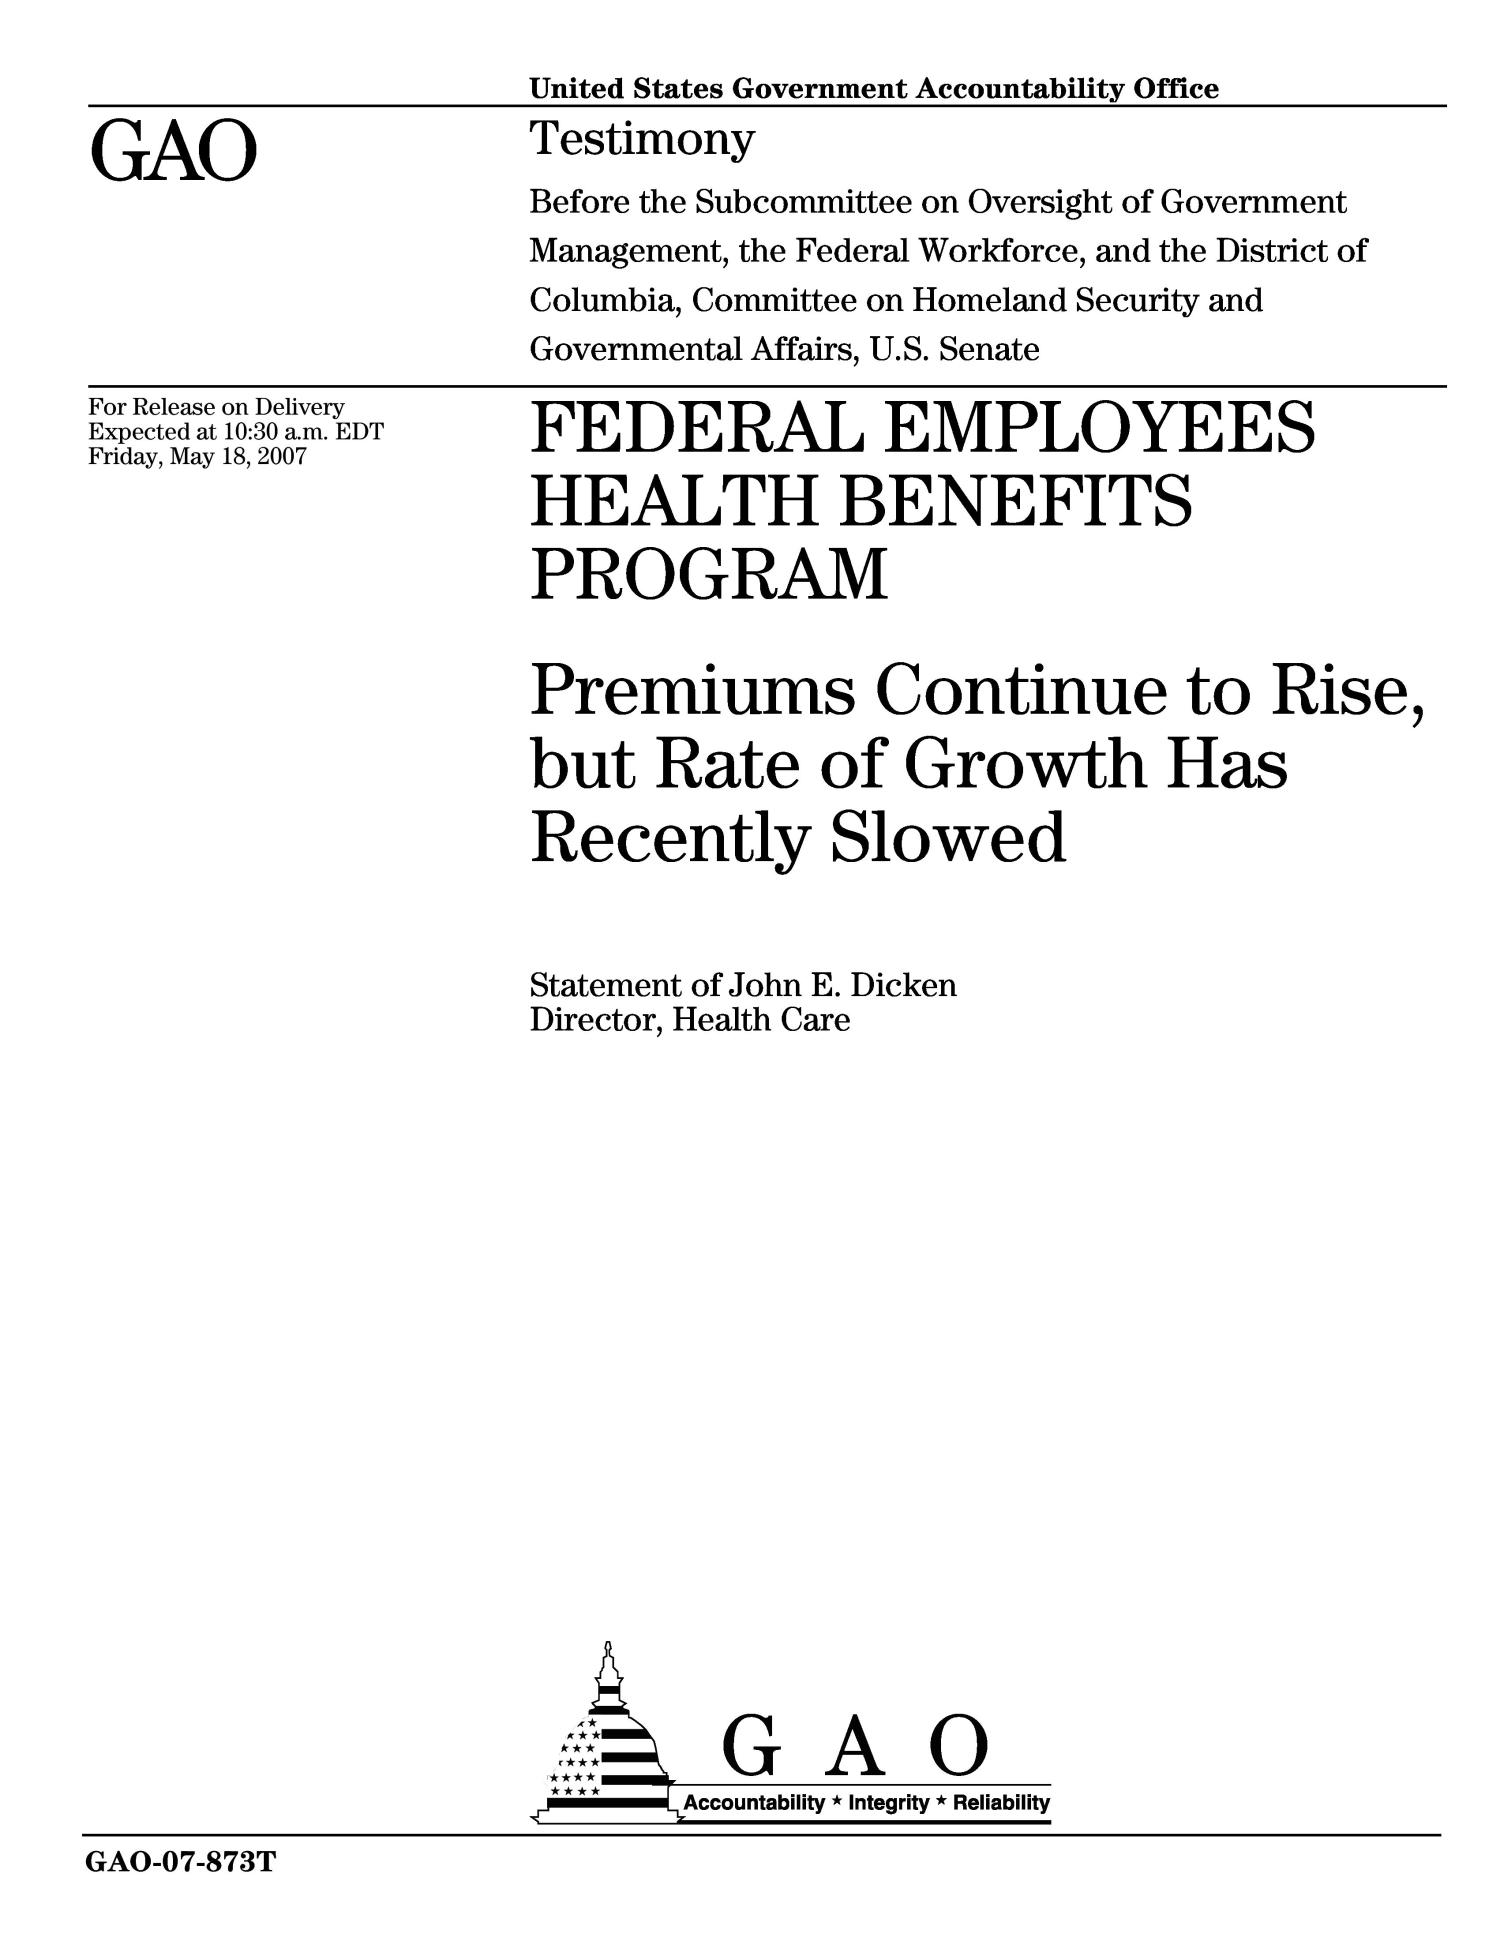 Federal Employees Health Benefits Program: Premiums Continue to Rise, but Rate of Growth Has Recently Slowed                                                                                                      [Sequence #]: 1 of 15